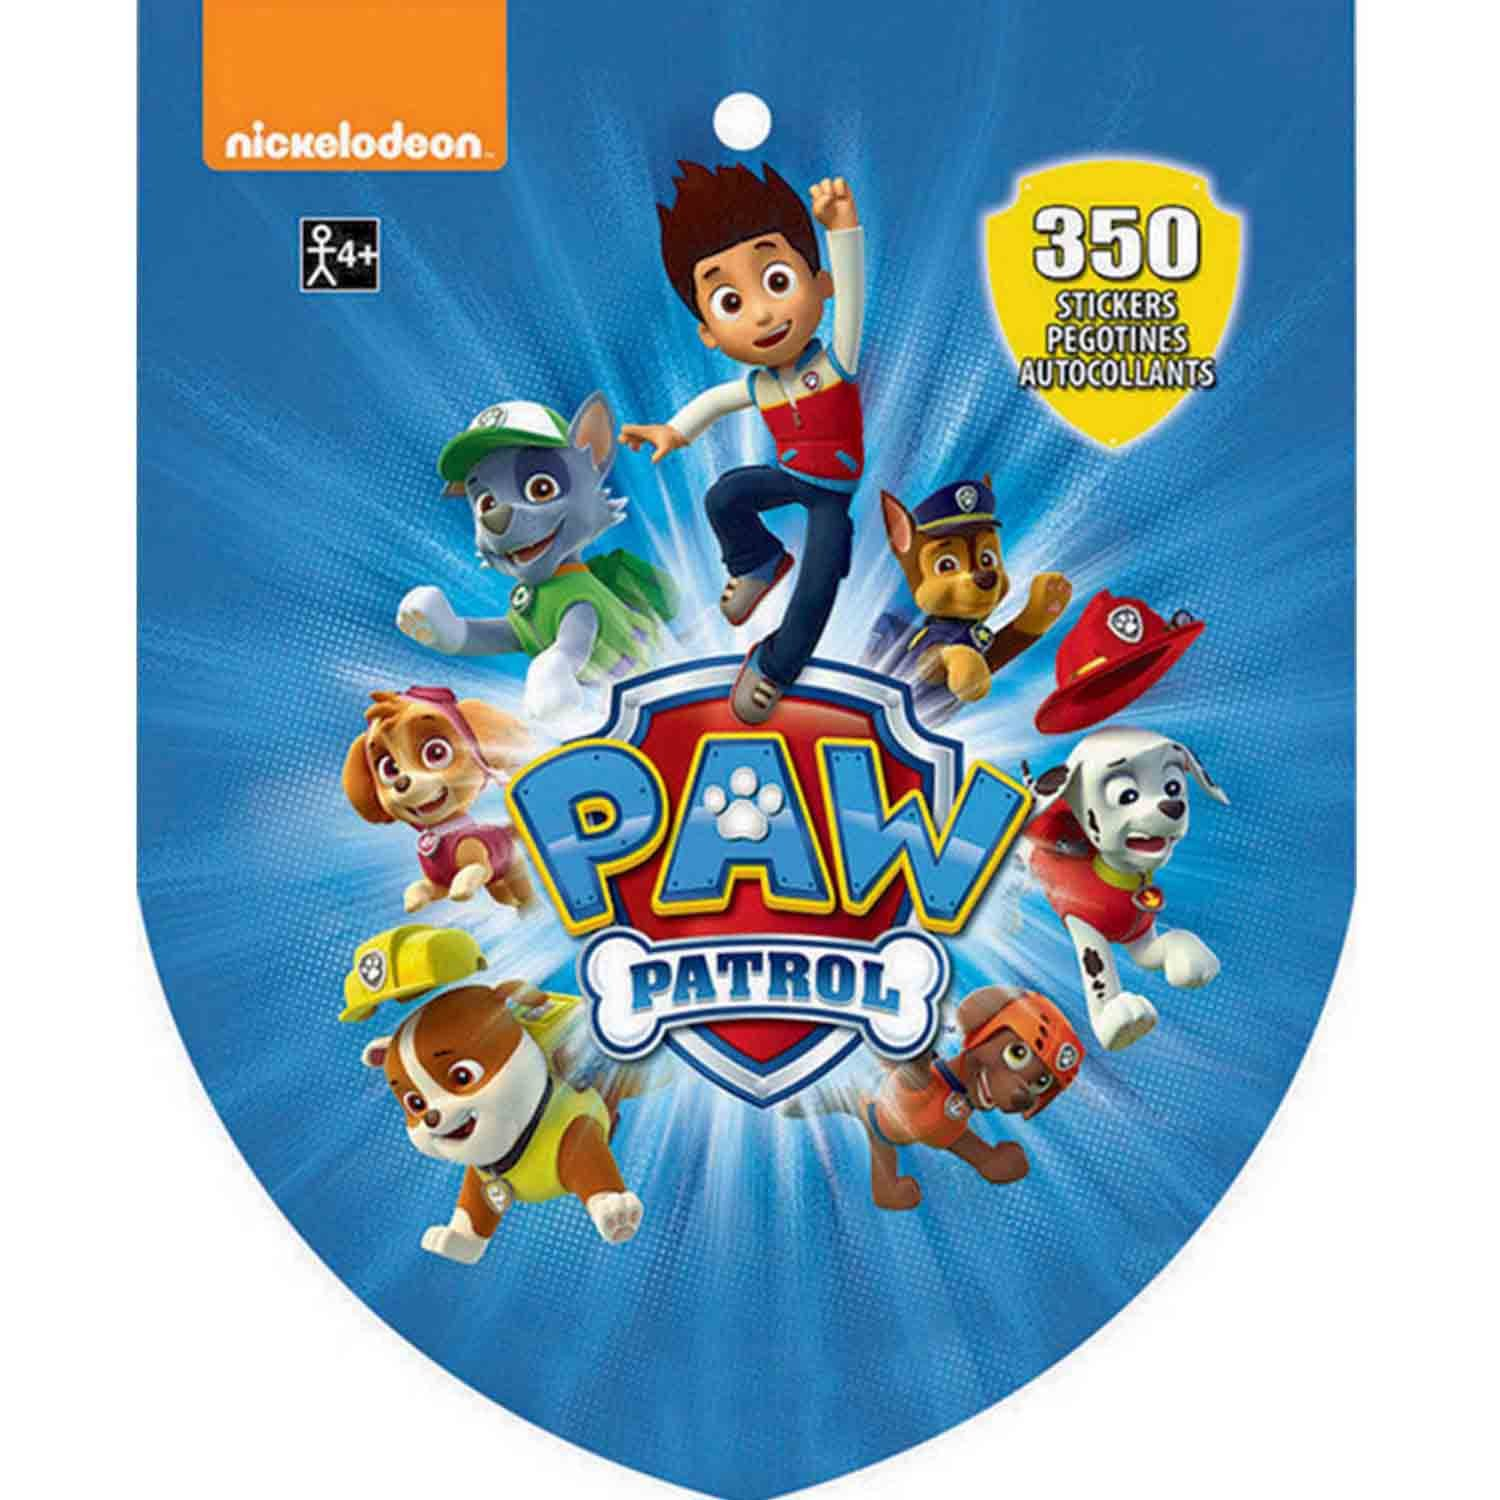 Sticker Book Paw Patrol